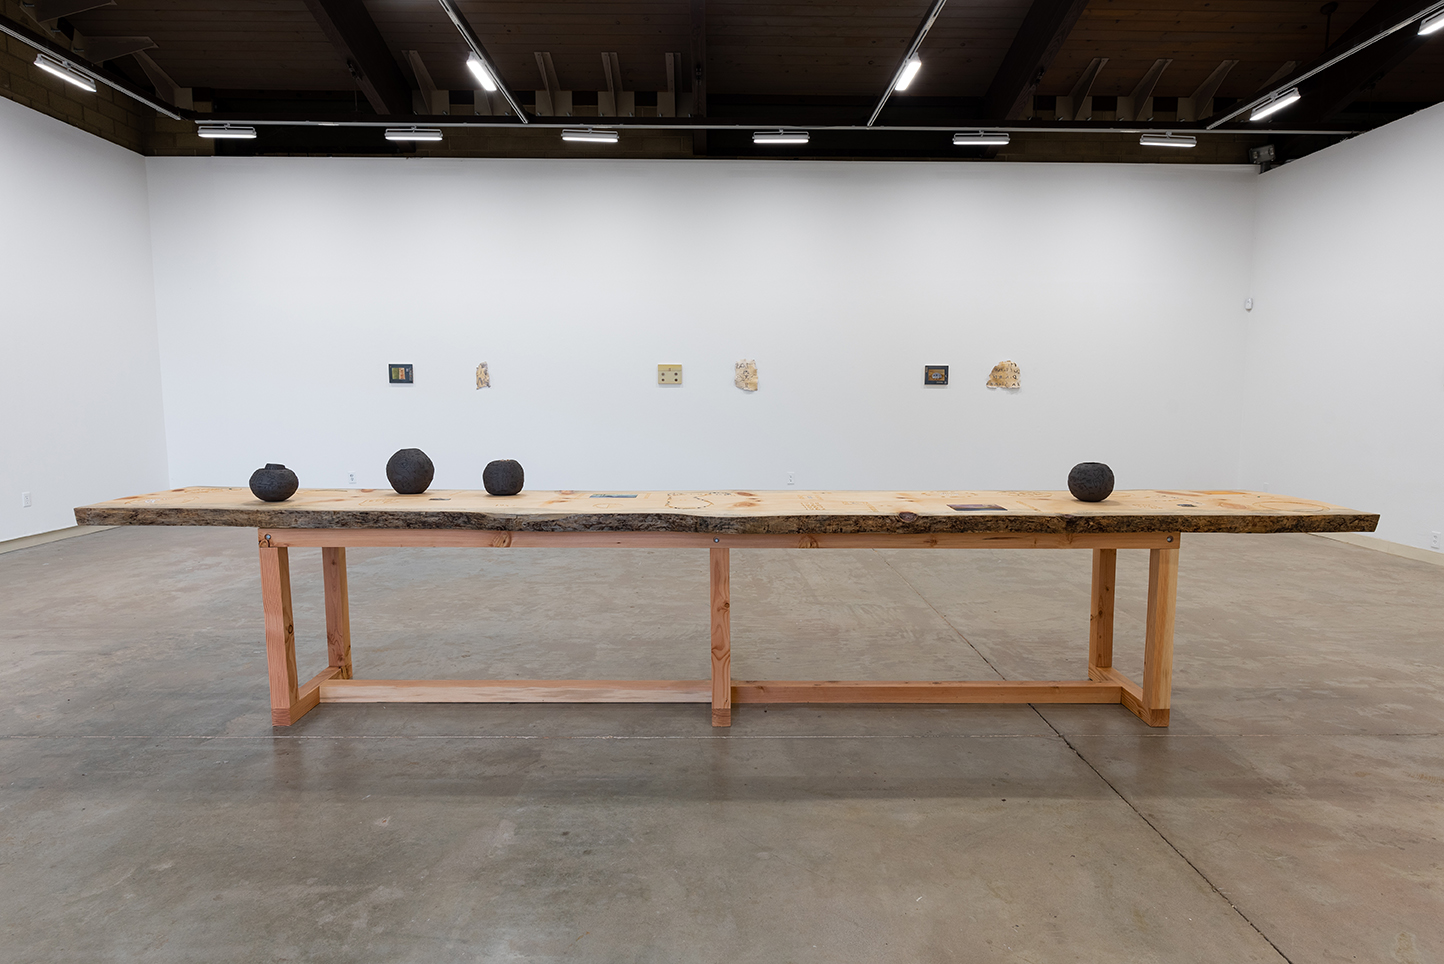 Communal Table  2018 Pine, ceramic, creek water, tile, granite, mica, obsidian, Aspen leaves, oil paintings, river clam shells, sage brush, serpentine, tin, tufa, sheep wool, wax 198 x 30 x 42 inches